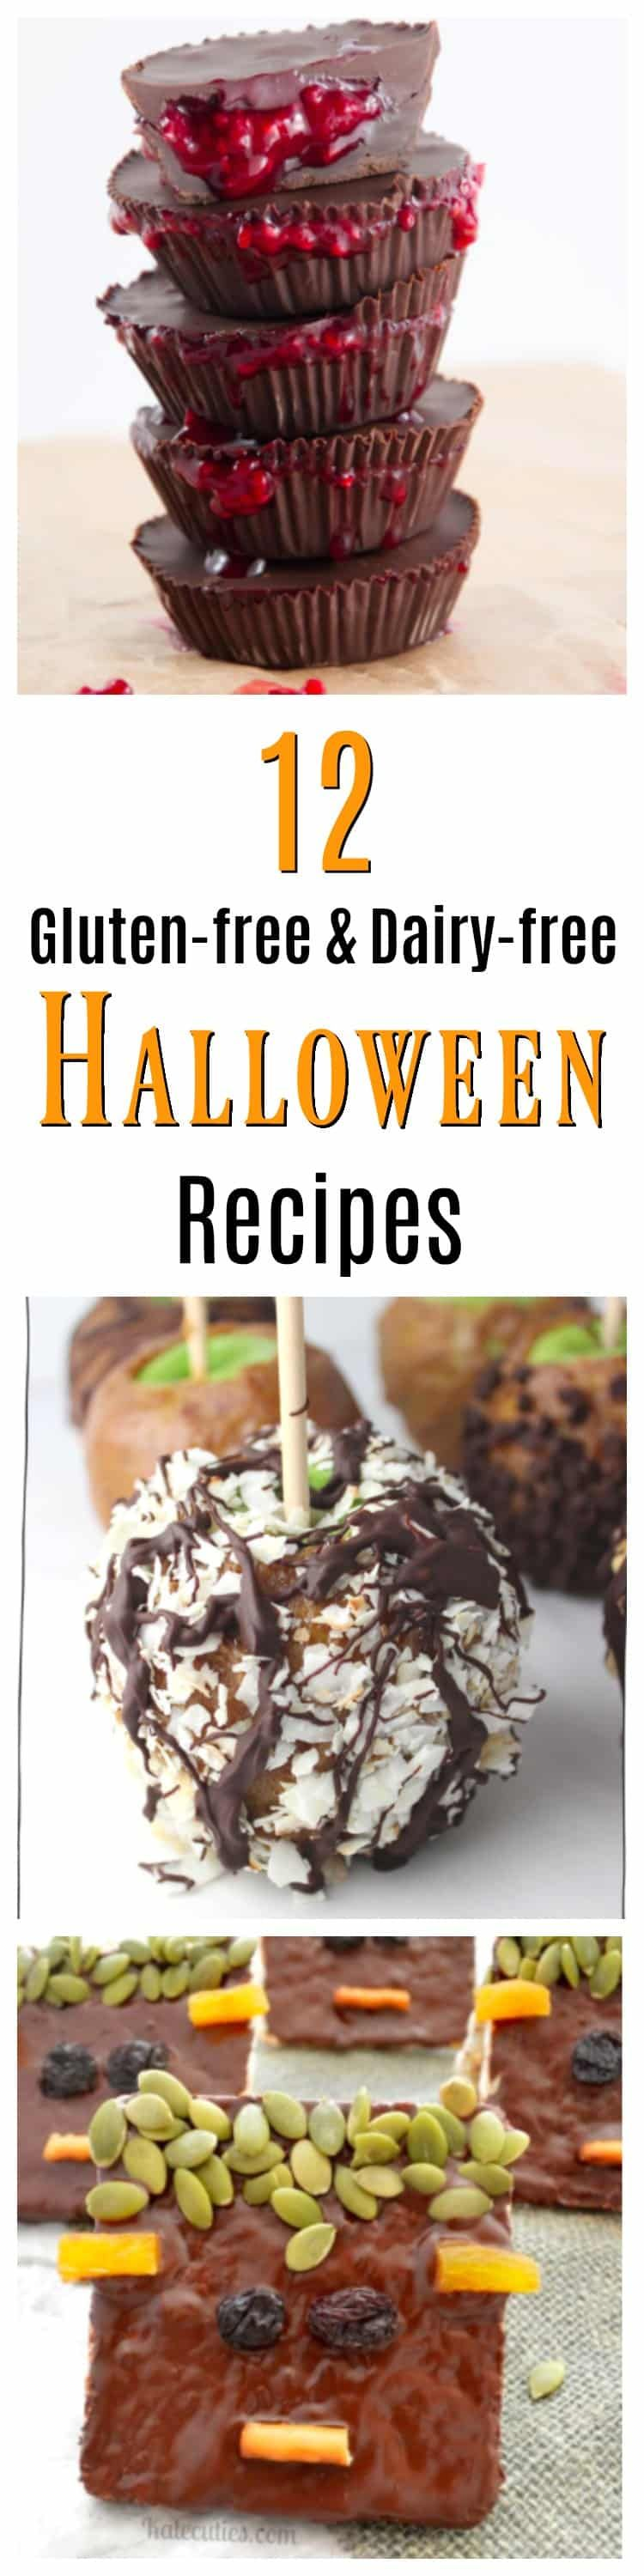 12 spooktacular gluten free and dairy free halloween treats for kids adults or